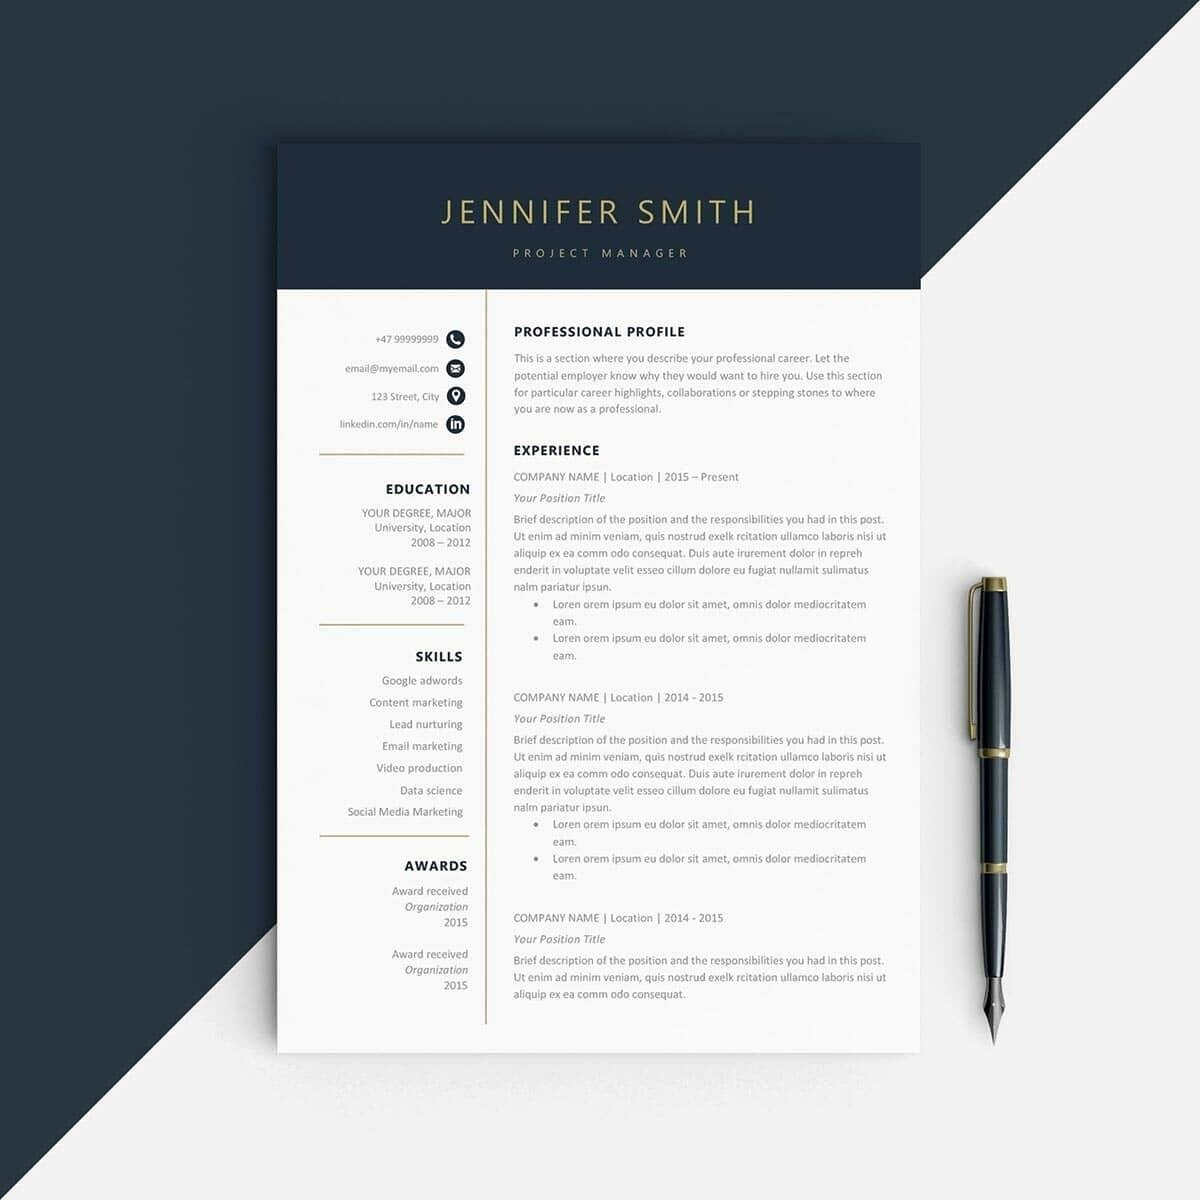 Best Free Word Resume Templates Beautiful Best Resume Templates 15 Examples to Download & Use Right